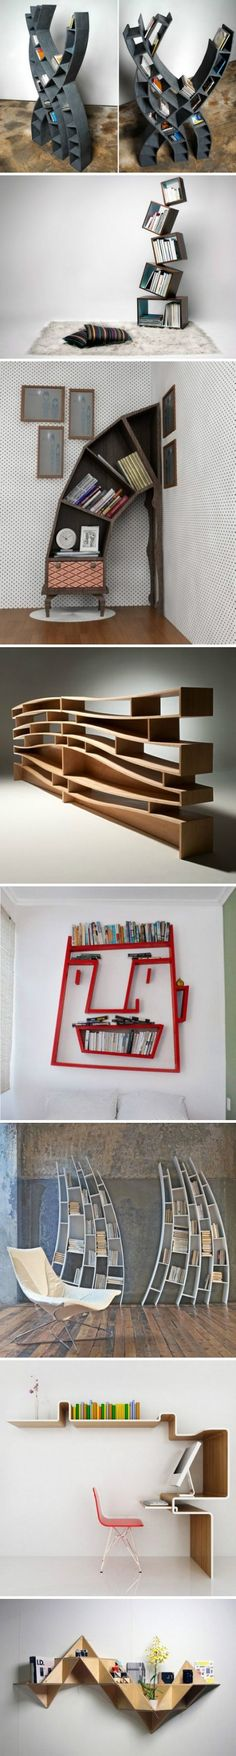 The best DIY projects & DIY ideas and tutorials: sewing, paper craft, DIY. Best DIY Furniture & Shelf Ideas 2017 / 2018 Unique DIY Book Shelves - These would look cool in the library! -Read More - Cool Bookshelves, Book Shelves, Bookshelf Diy, Bookcases, Library Bookshelves, Bookcase Wall, Book Storage, Cool Furniture, Furniture Design